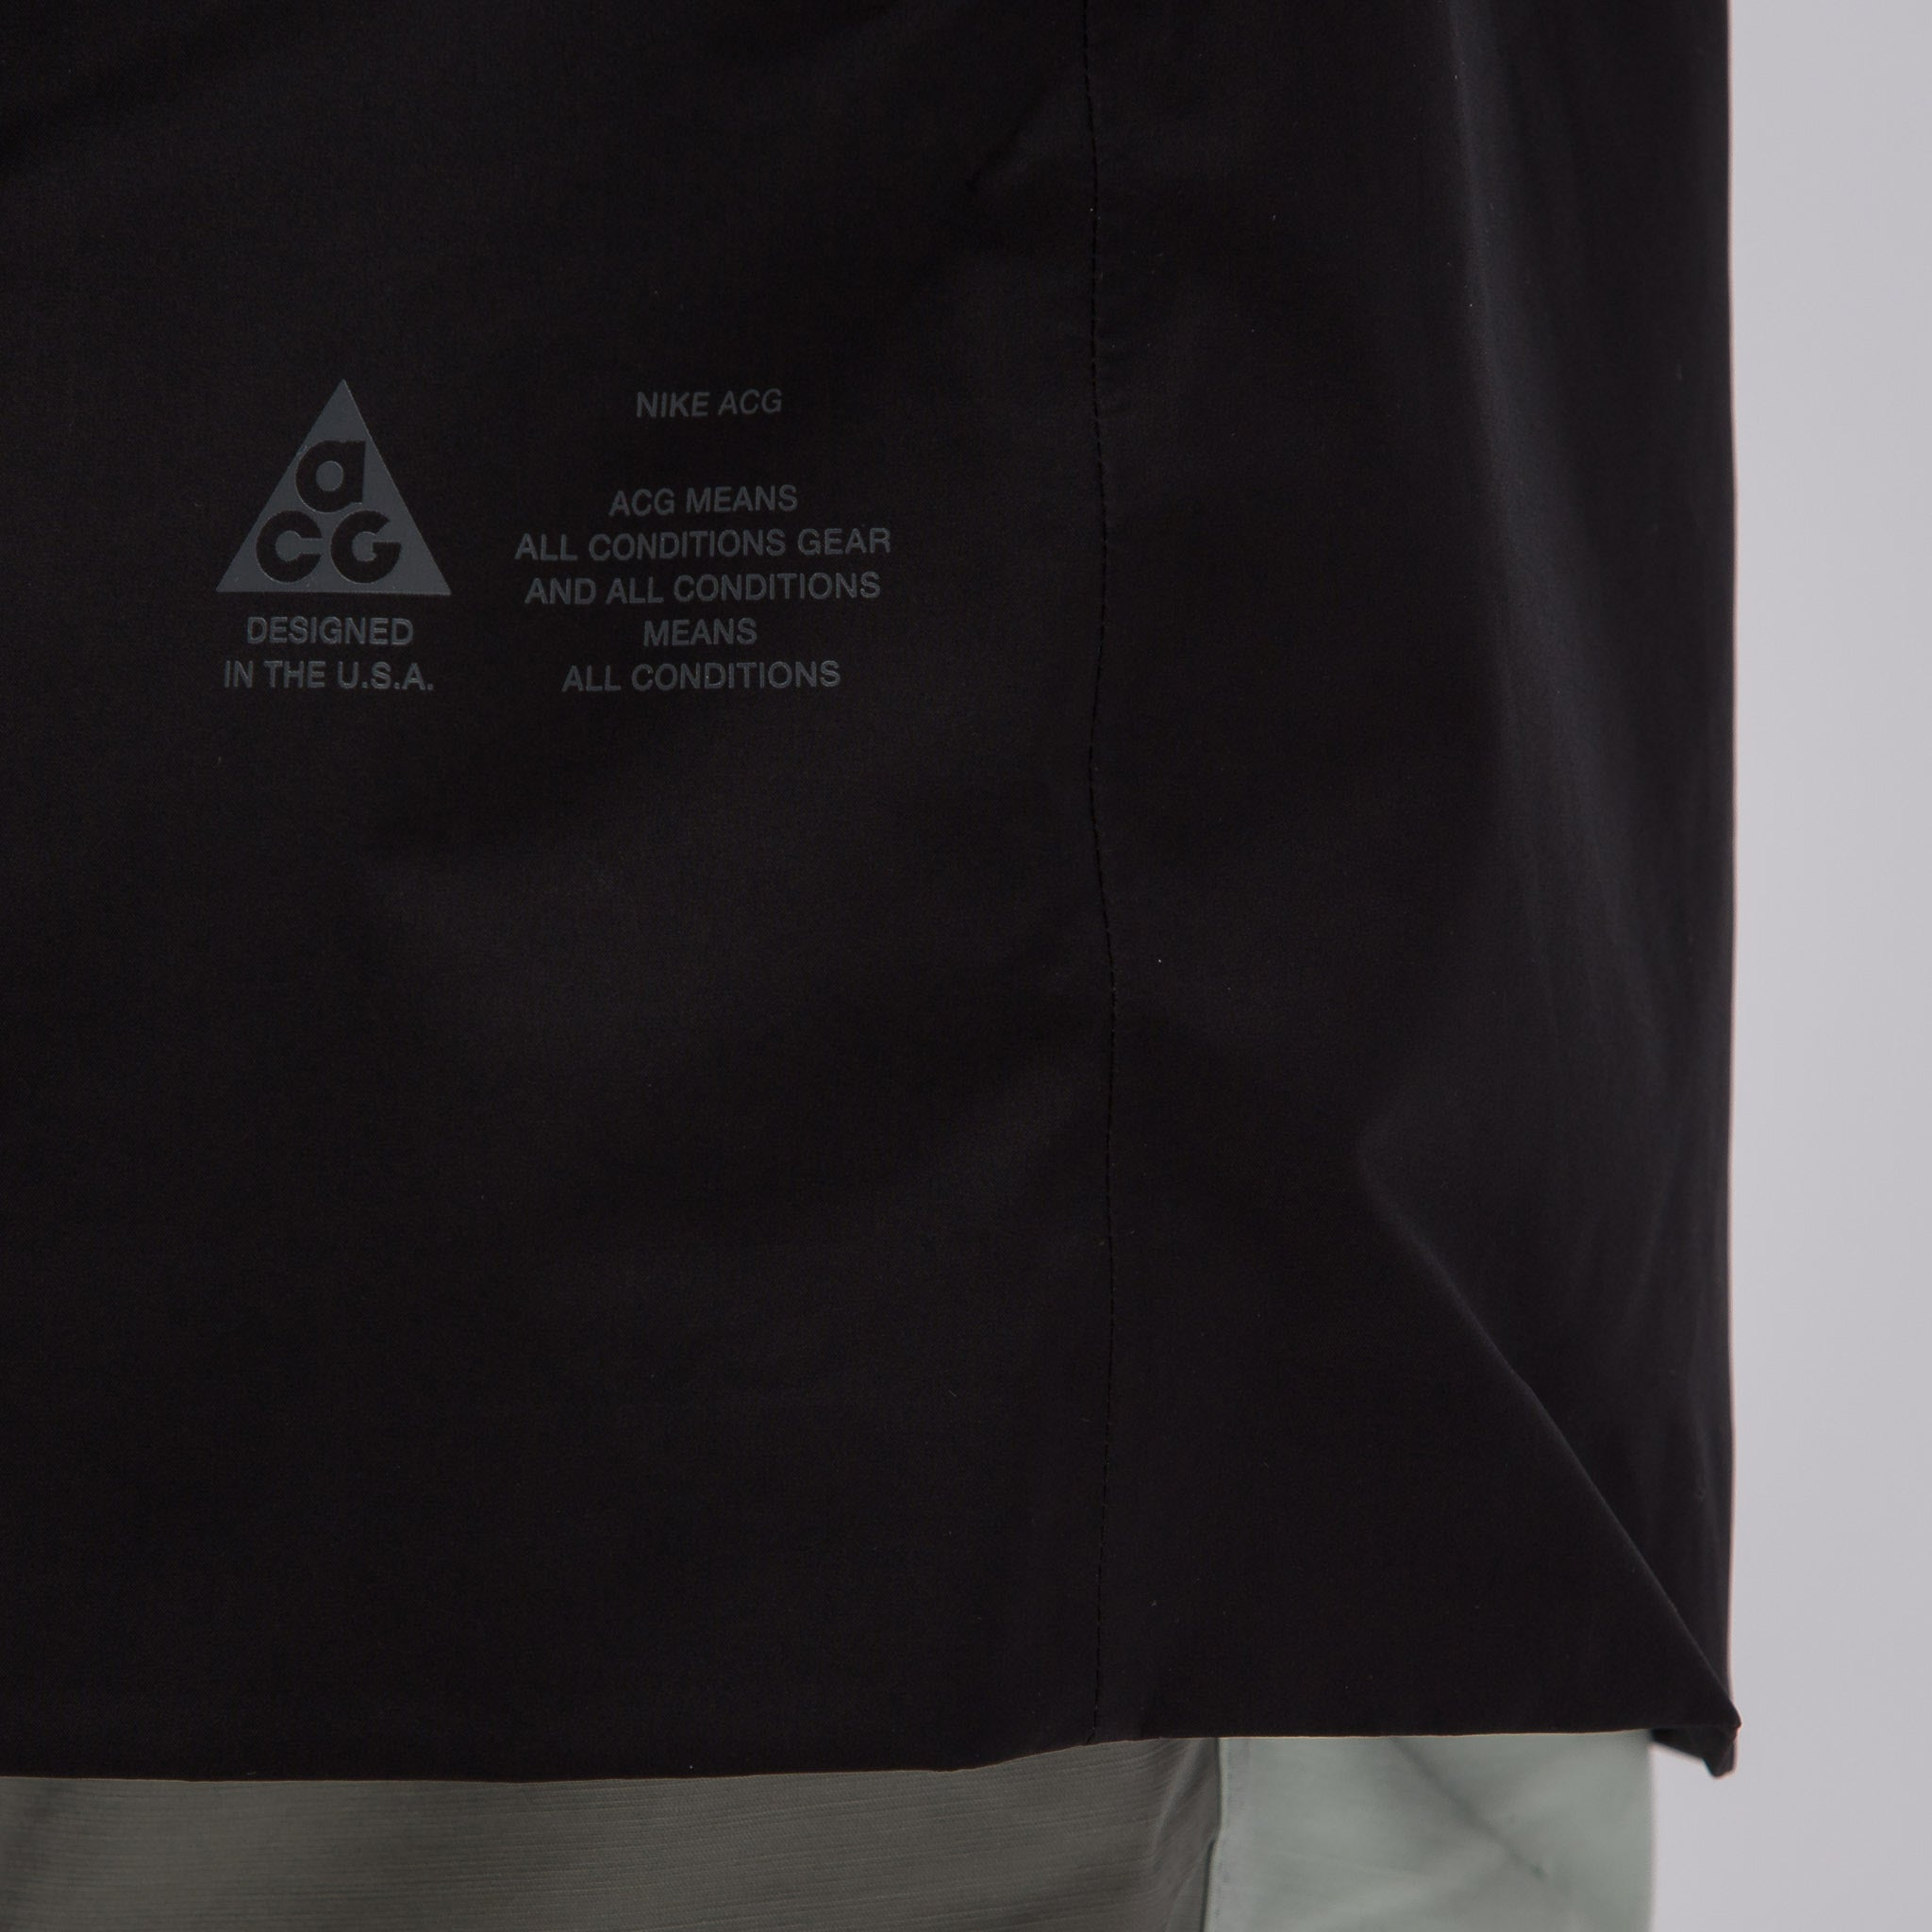 ACG 3-in-1 System Coat in Black/Barely Green